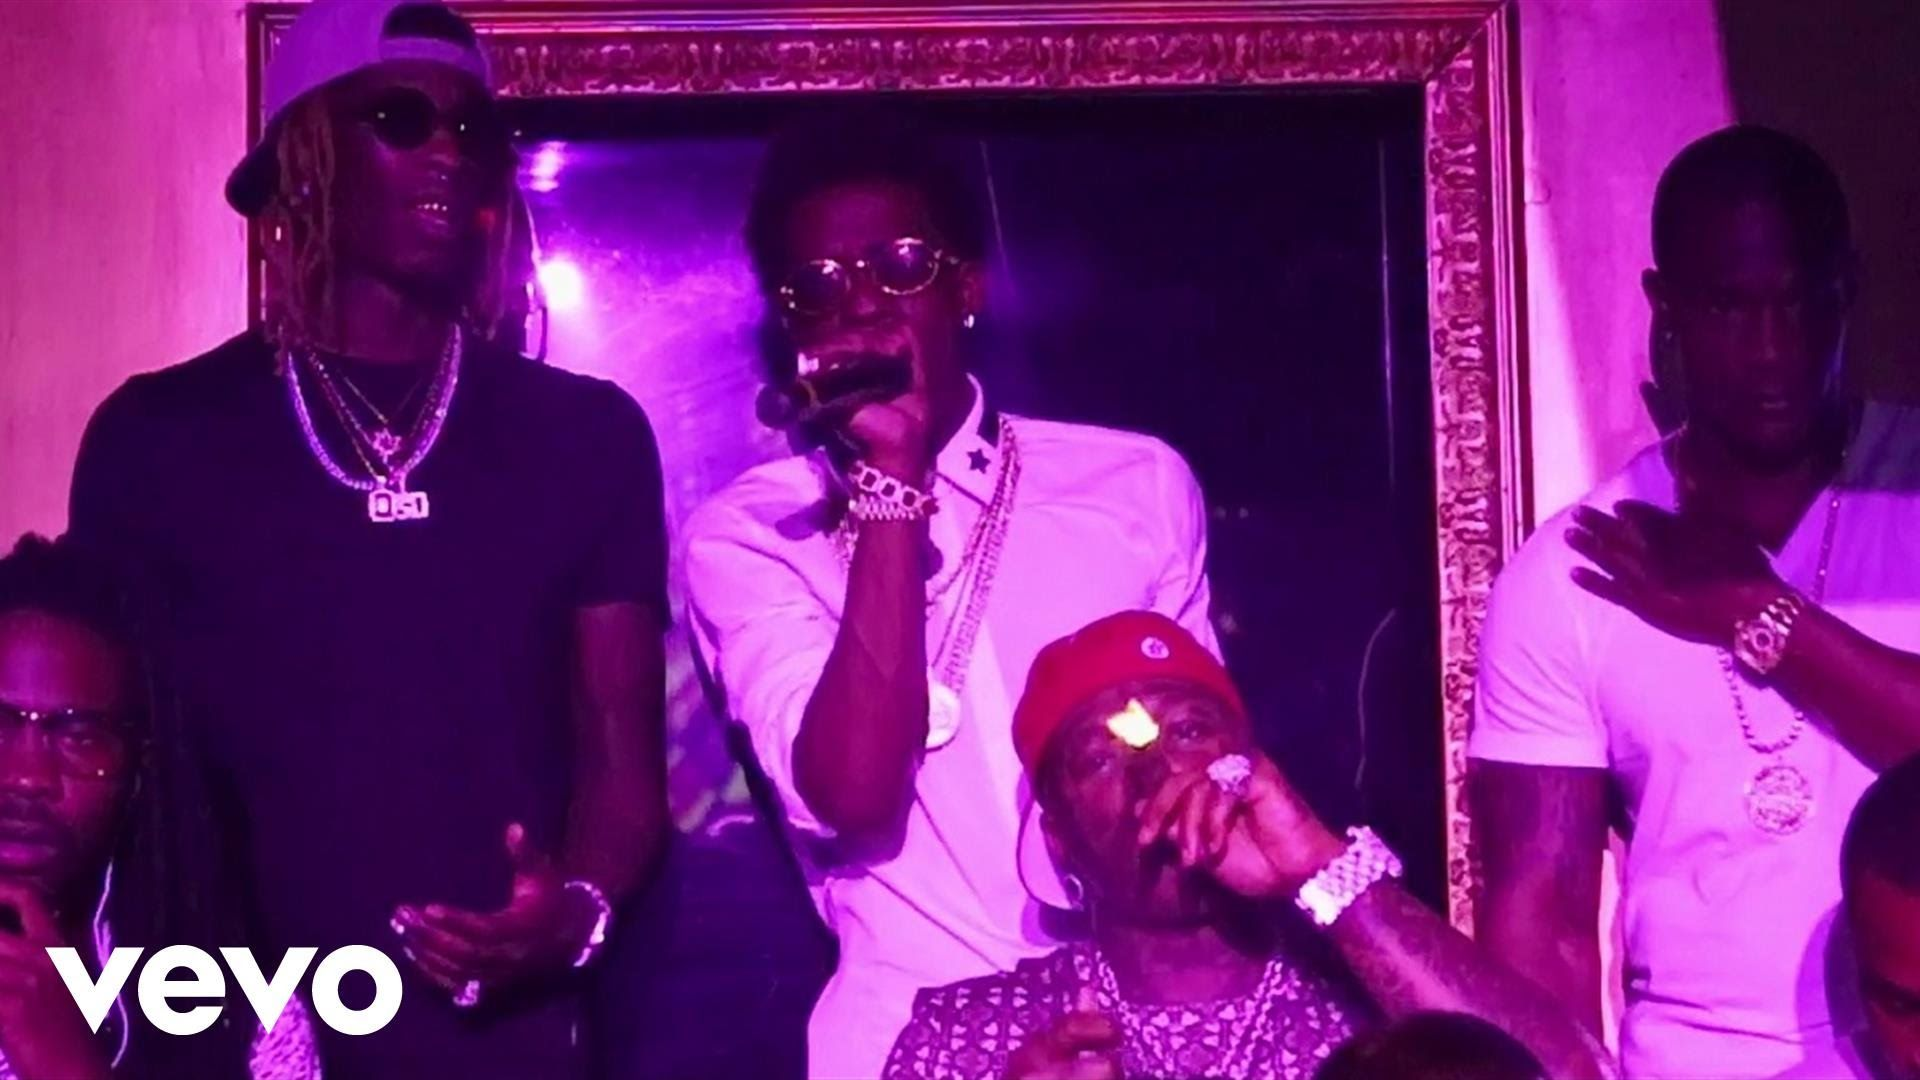 Rich Gang Tell Em ft. Young Thug, Rich Homie Quan Rich